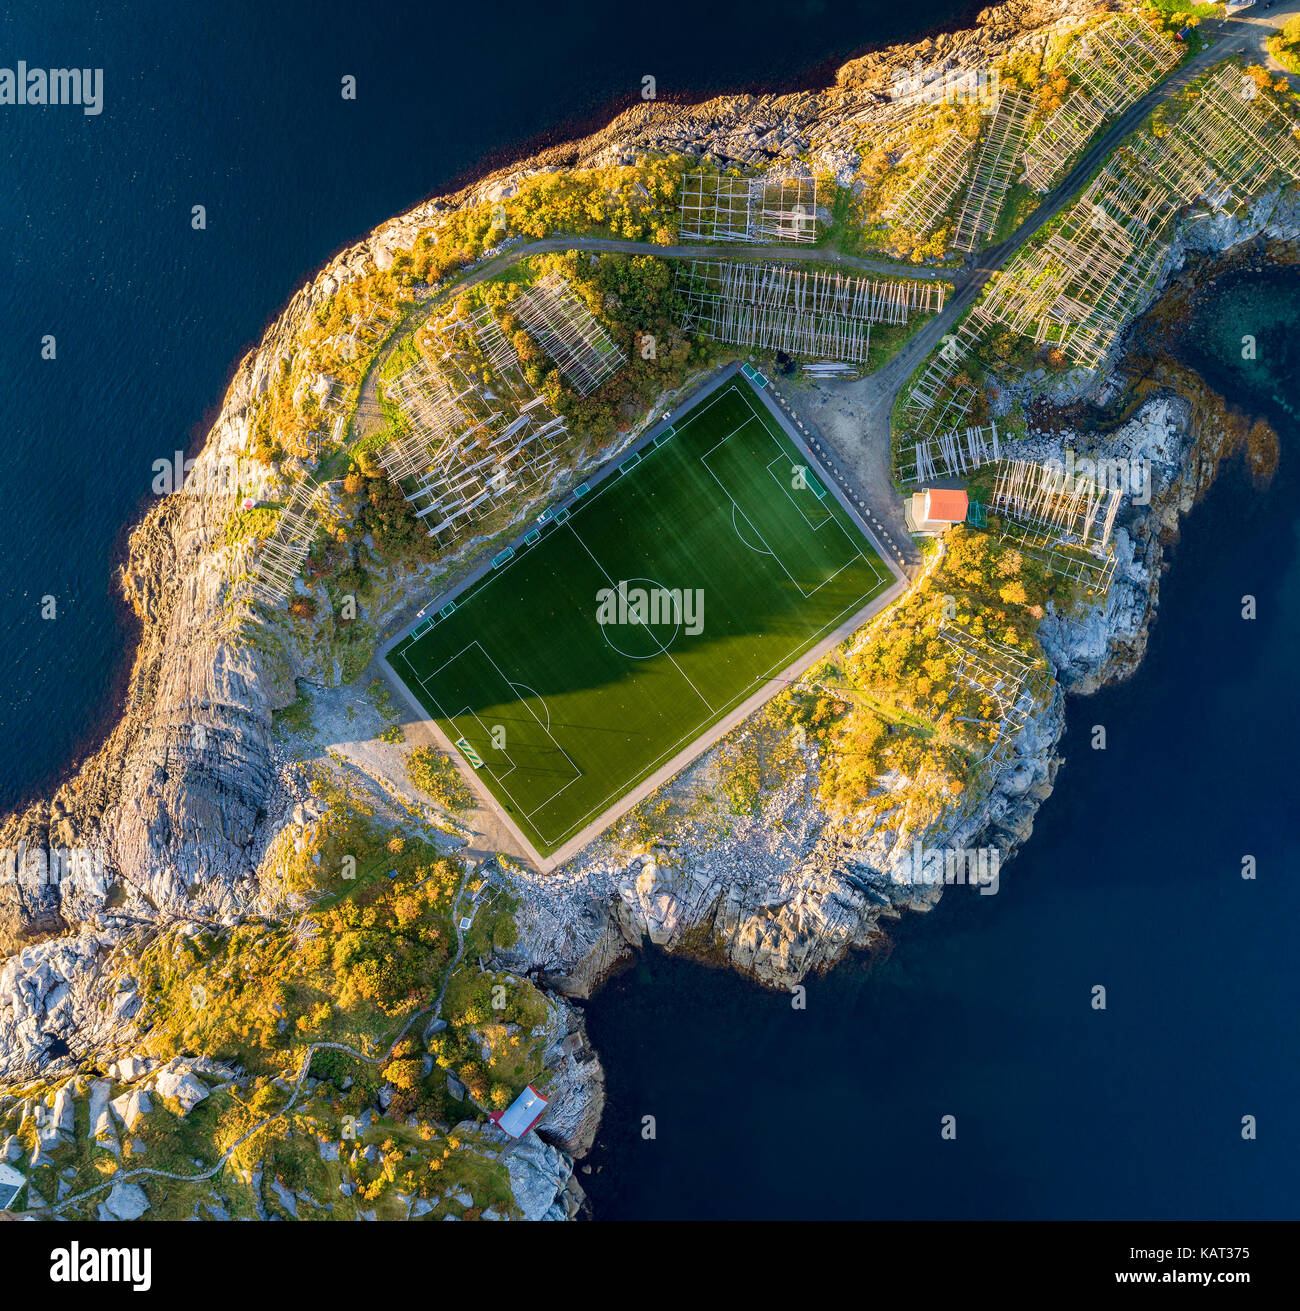 Football field in Henningsvaer from above. Henningsvaer is a fishing village located on several small islands in - Stock Image